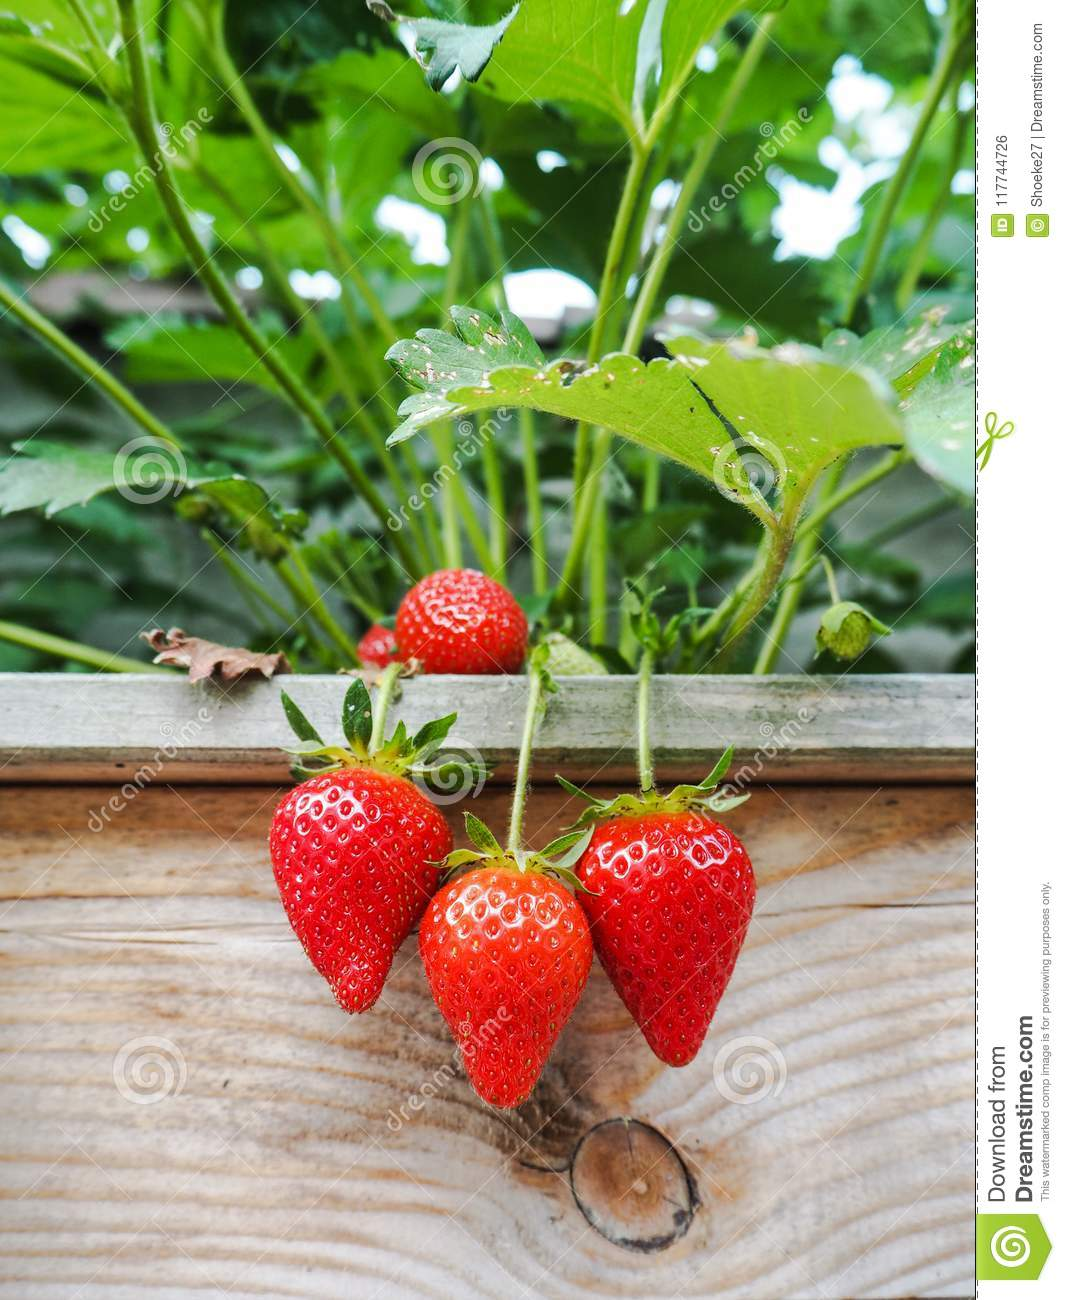 Ripe red strawberries hanging over the edge of a wooden frame